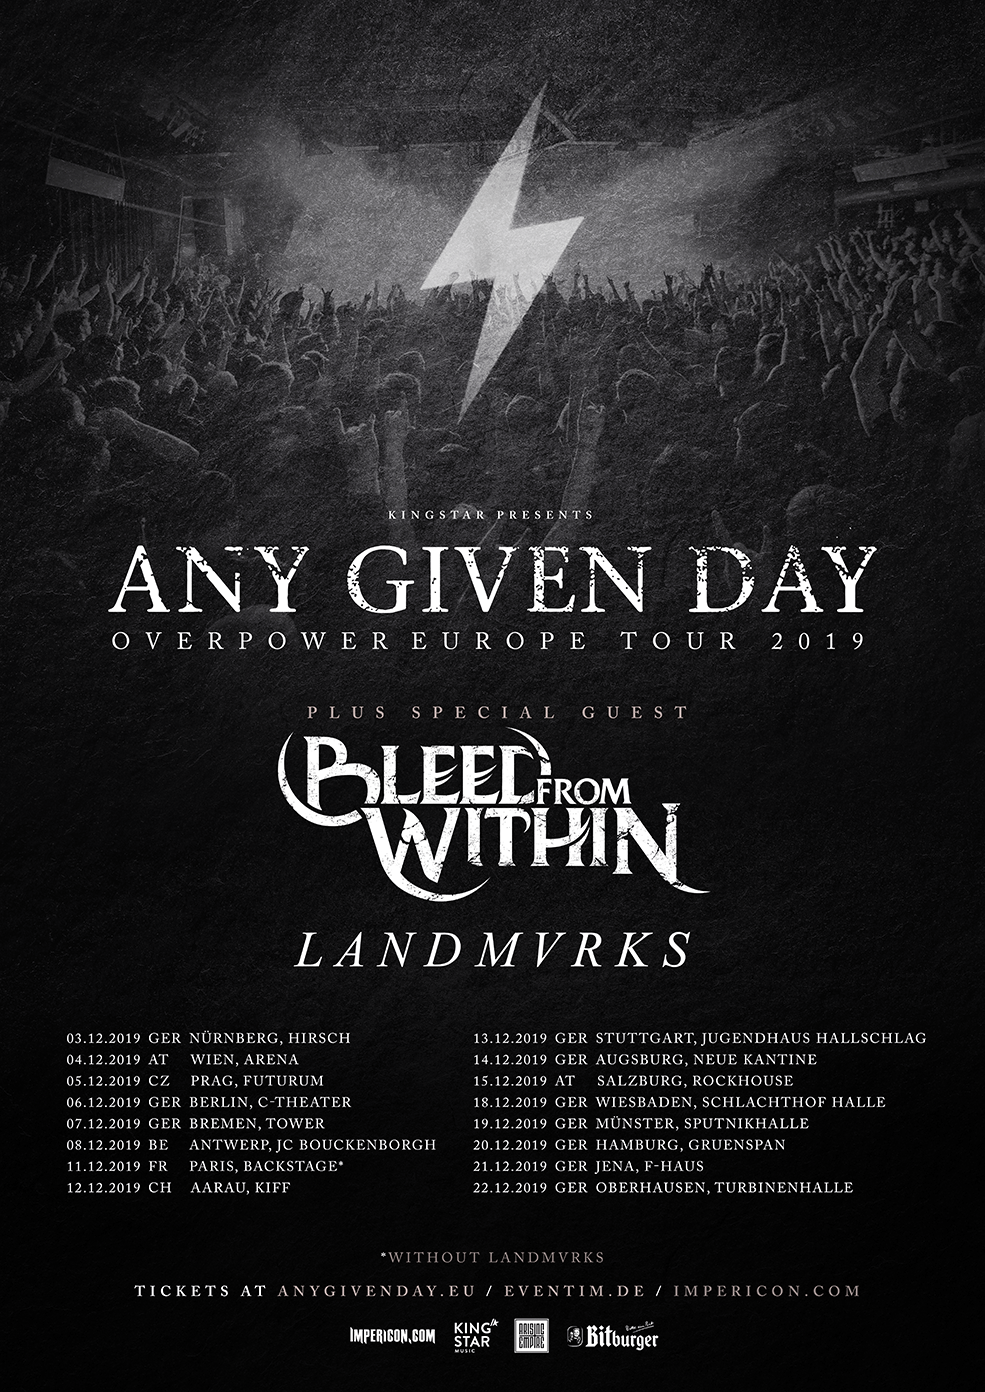 Any Given Day - Overpower Europe Tour 2019